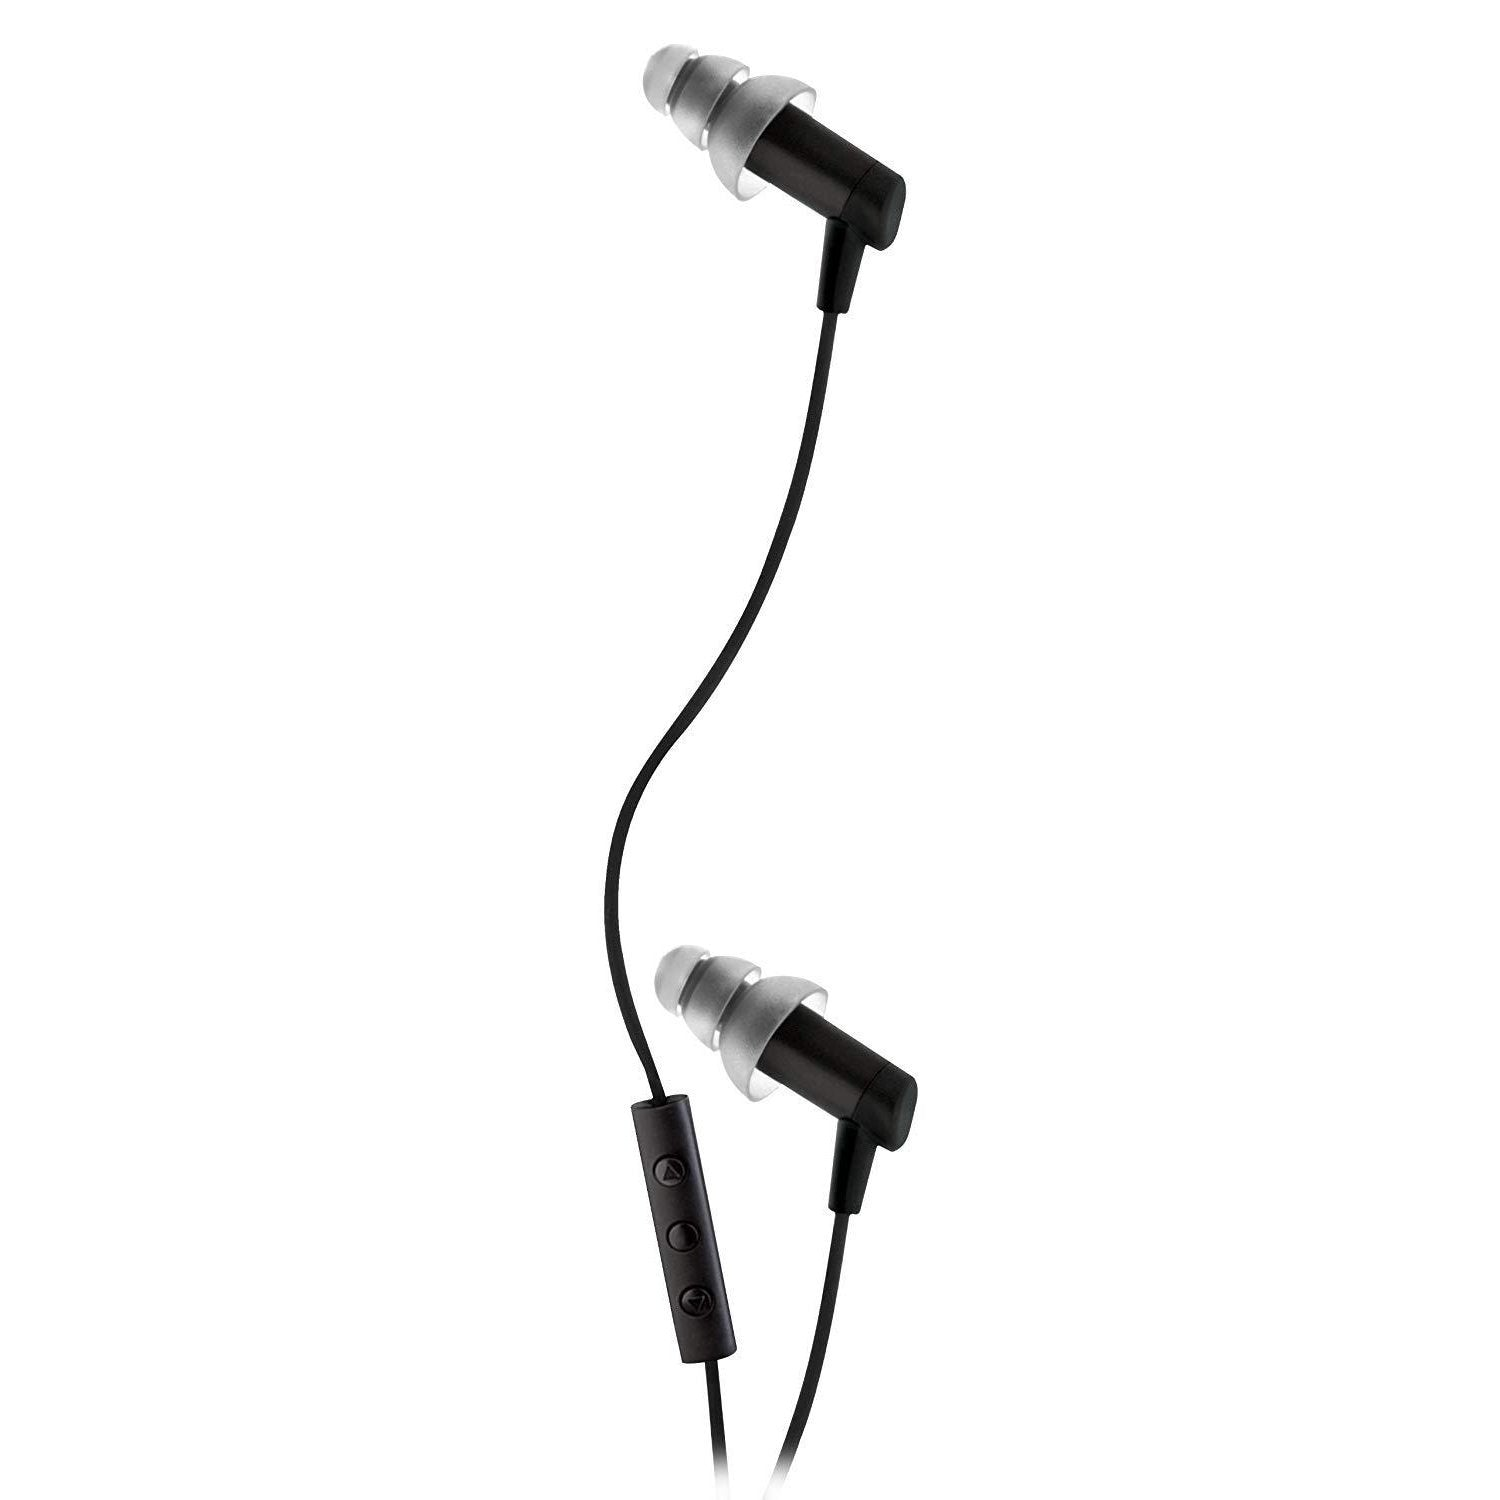 Noise-Isolating Earphones with 3 Button Microphone Control